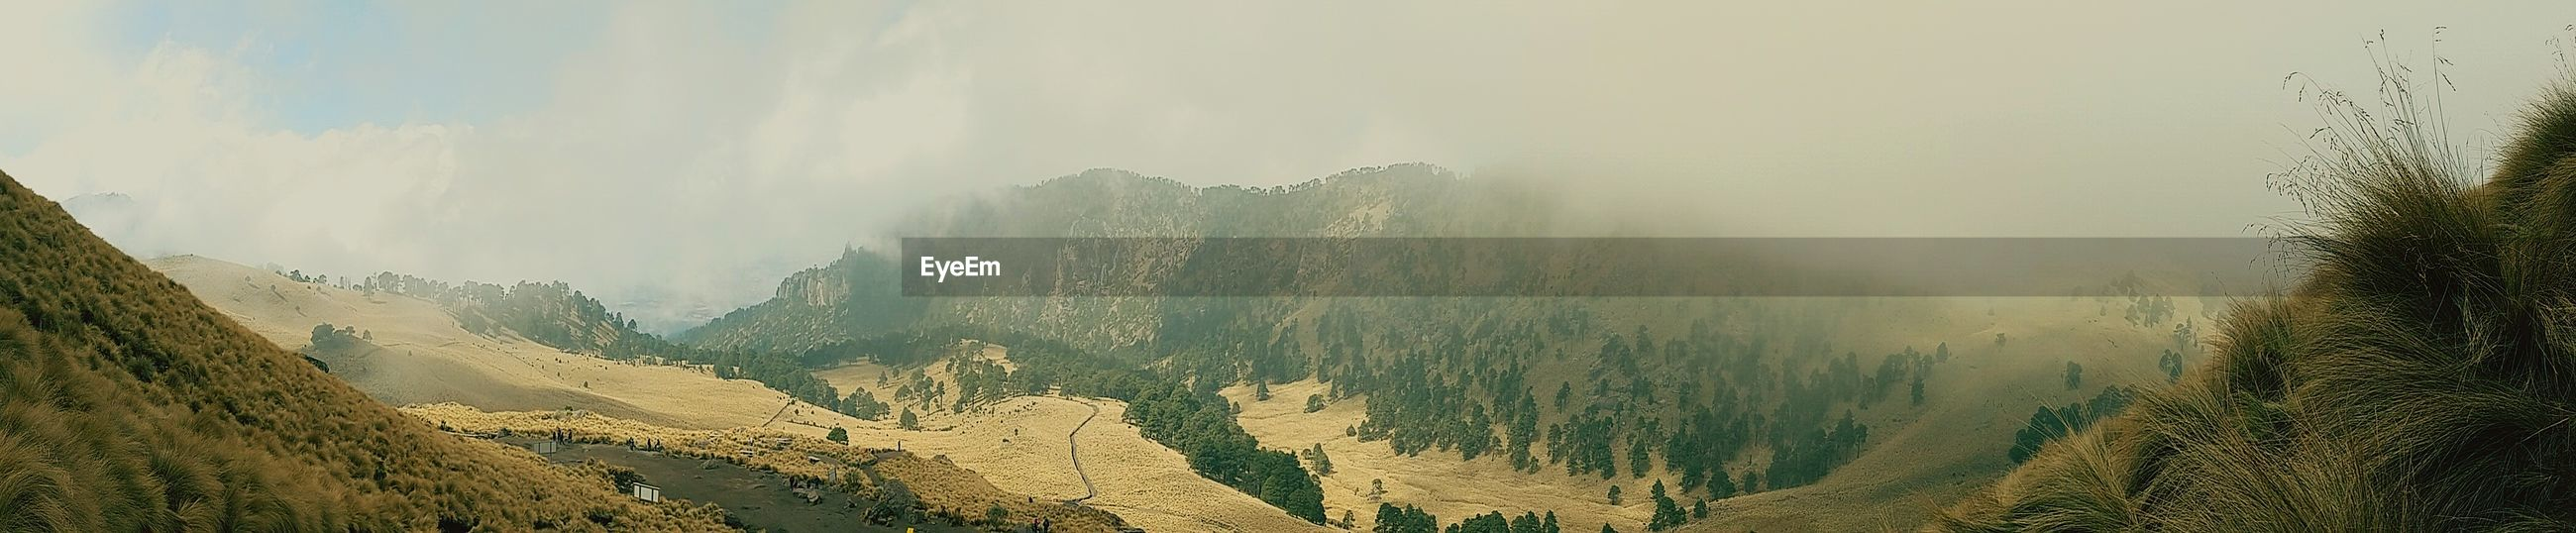 fog, scenics - nature, environment, tree, beauty in nature, mountain, tranquility, tranquil scene, landscape, sky, plant, nature, non-urban scene, cloud - sky, land, no people, mountain range, day, idyllic, outdoors, coniferous tree, pine tree